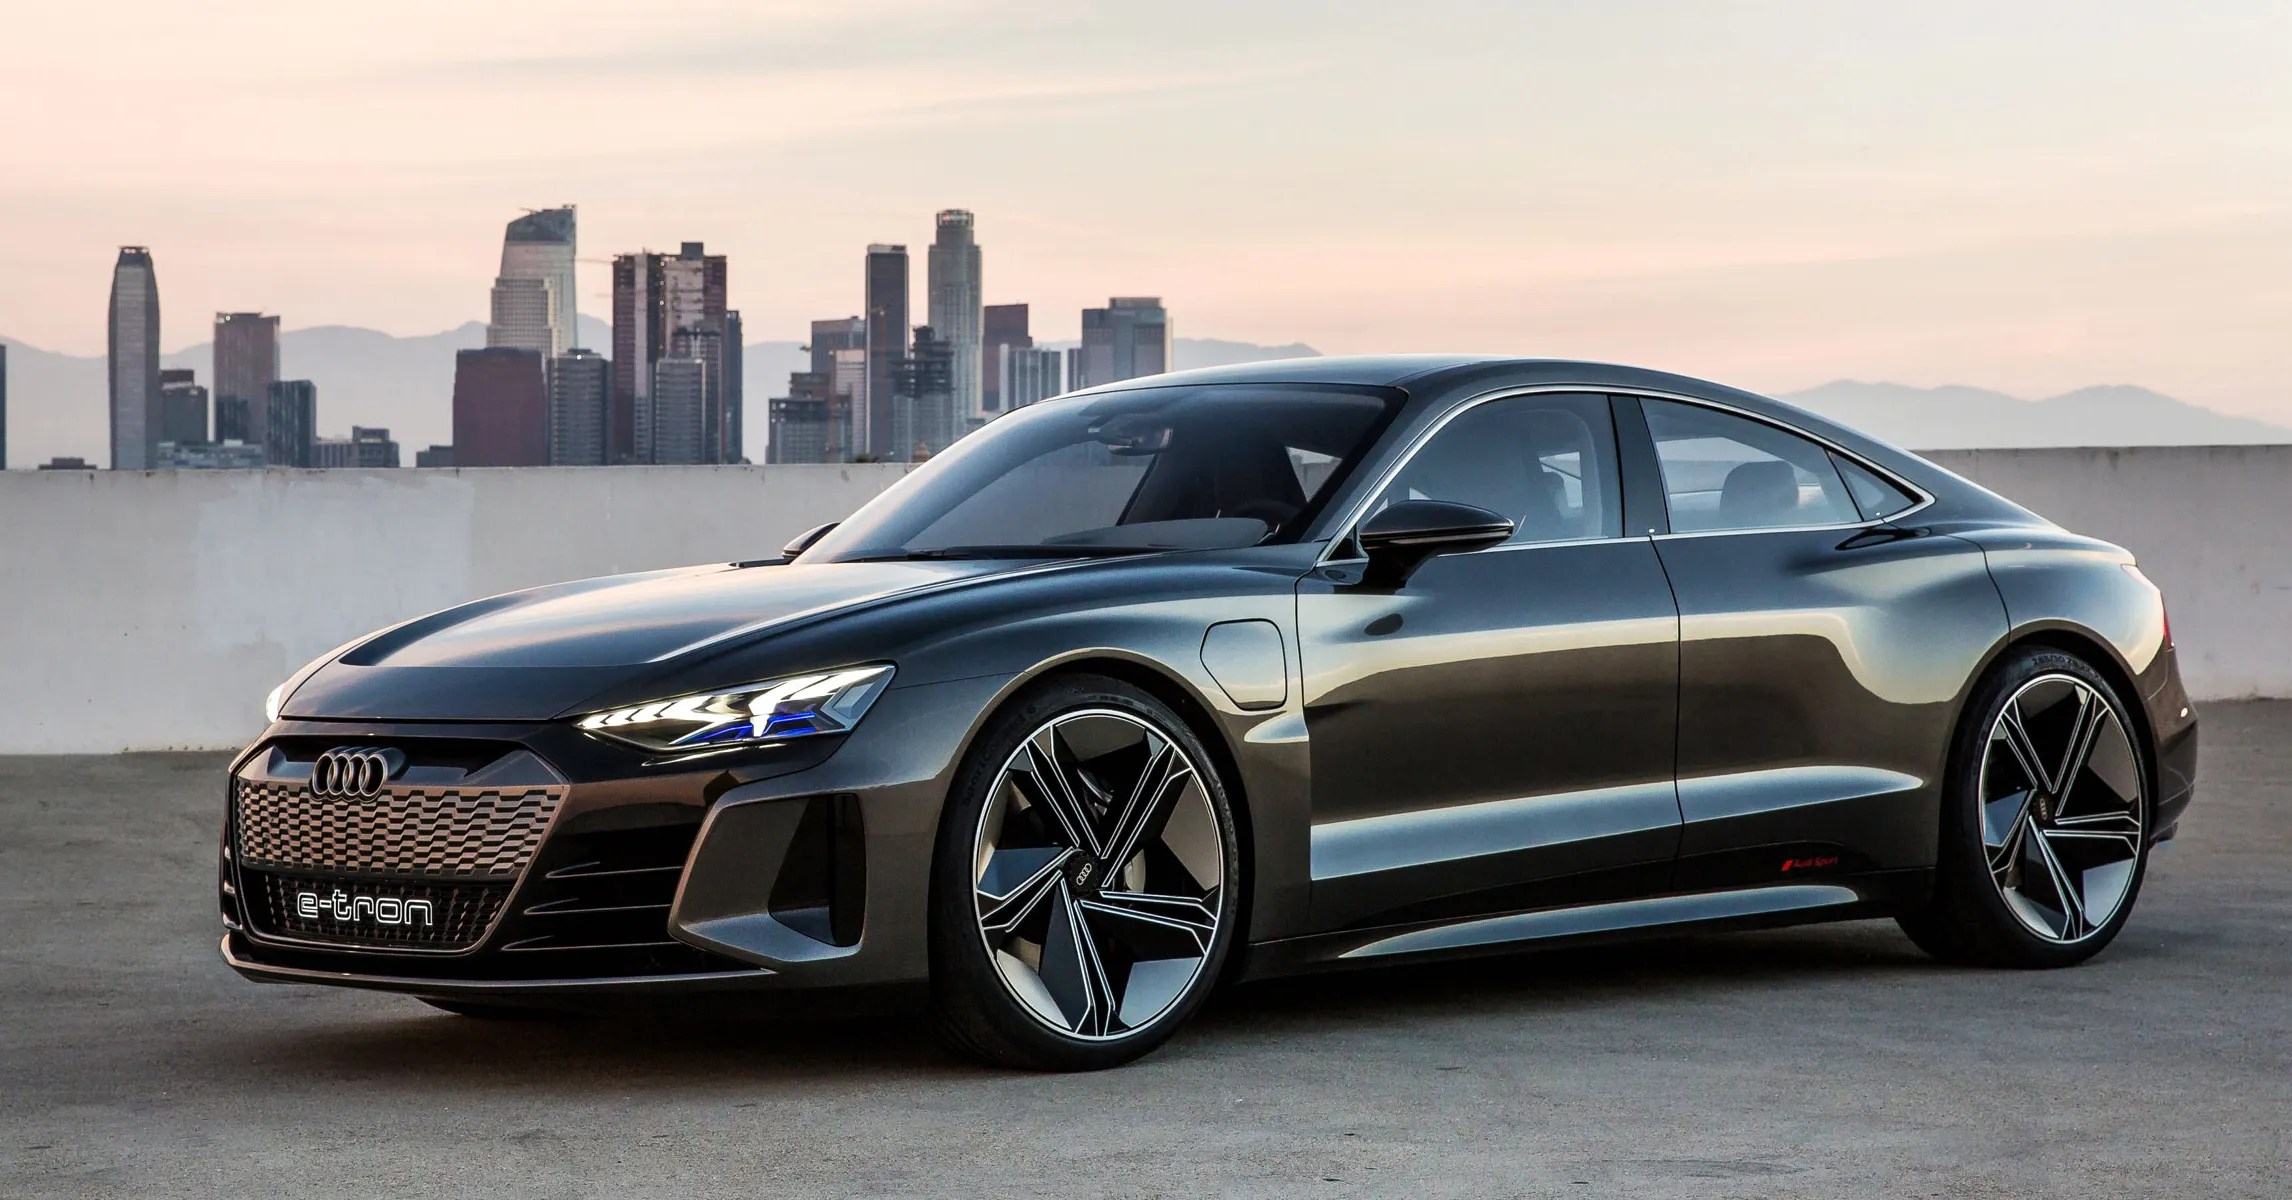 Audi S E Tron Gt Brings Battery Power To A Speedy Svelte